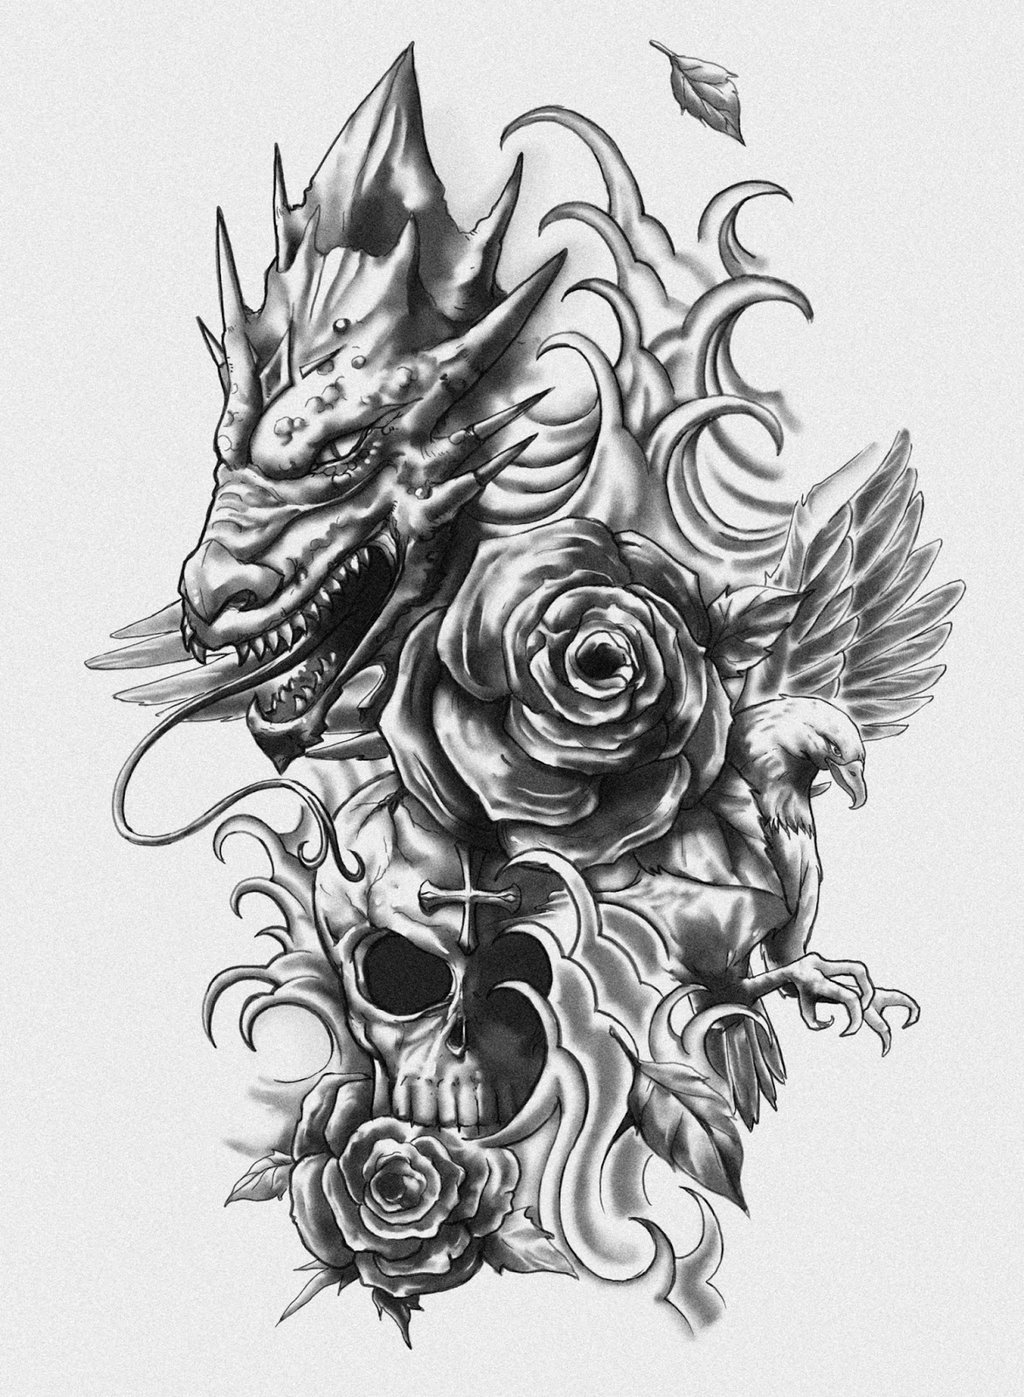 Grey Rose Flowers And Dragon Skull And Flower Designs